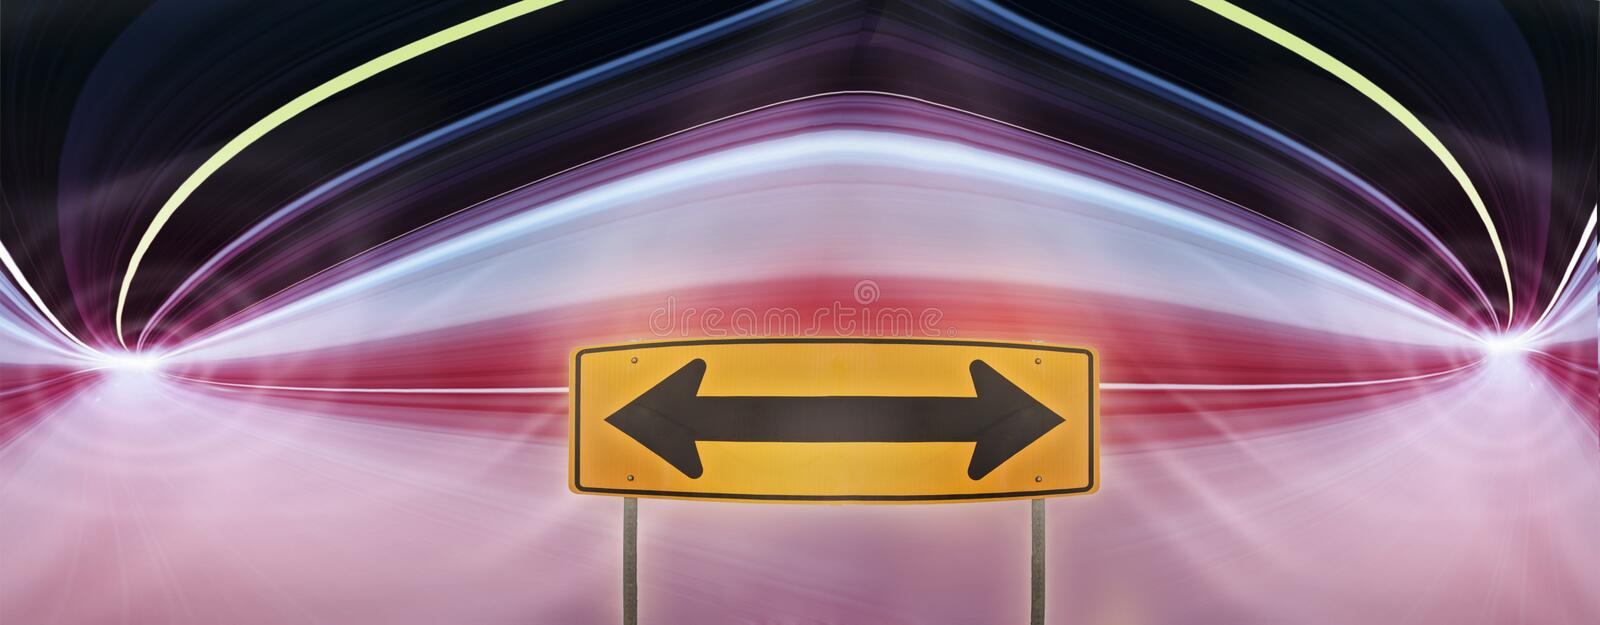 Traffic sign in a colorful highway tunnel